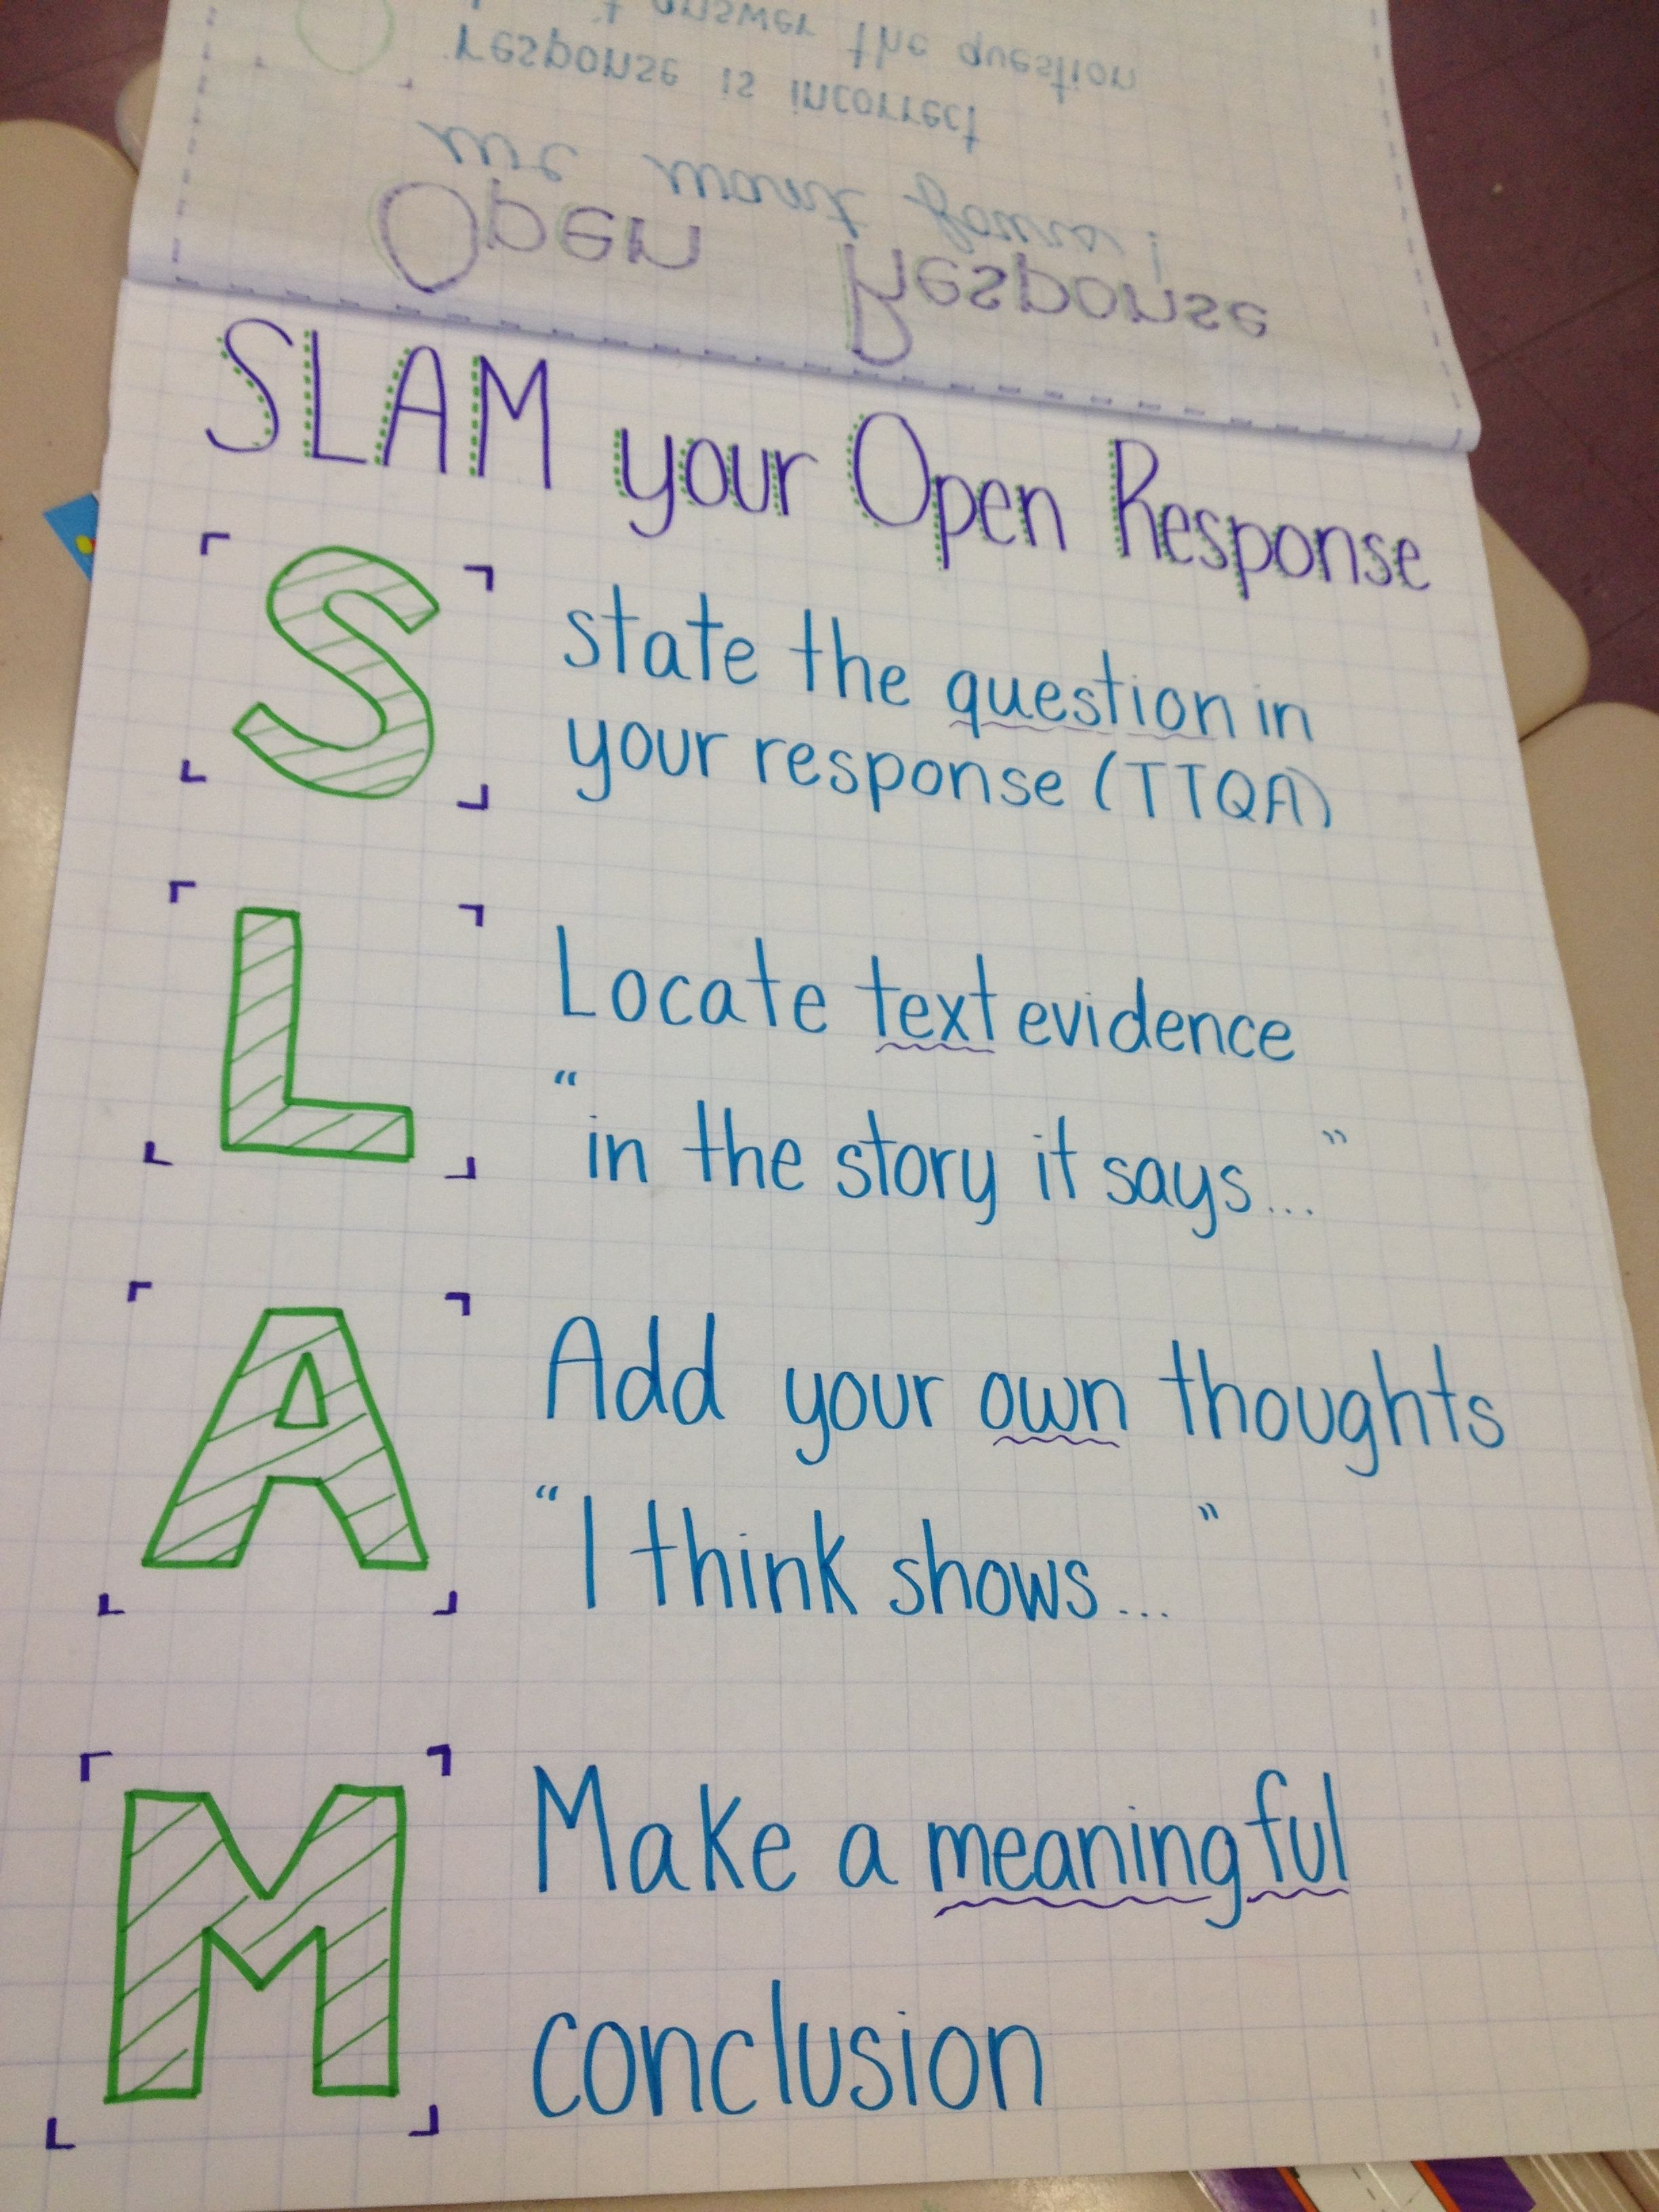 Slam Your Open Response